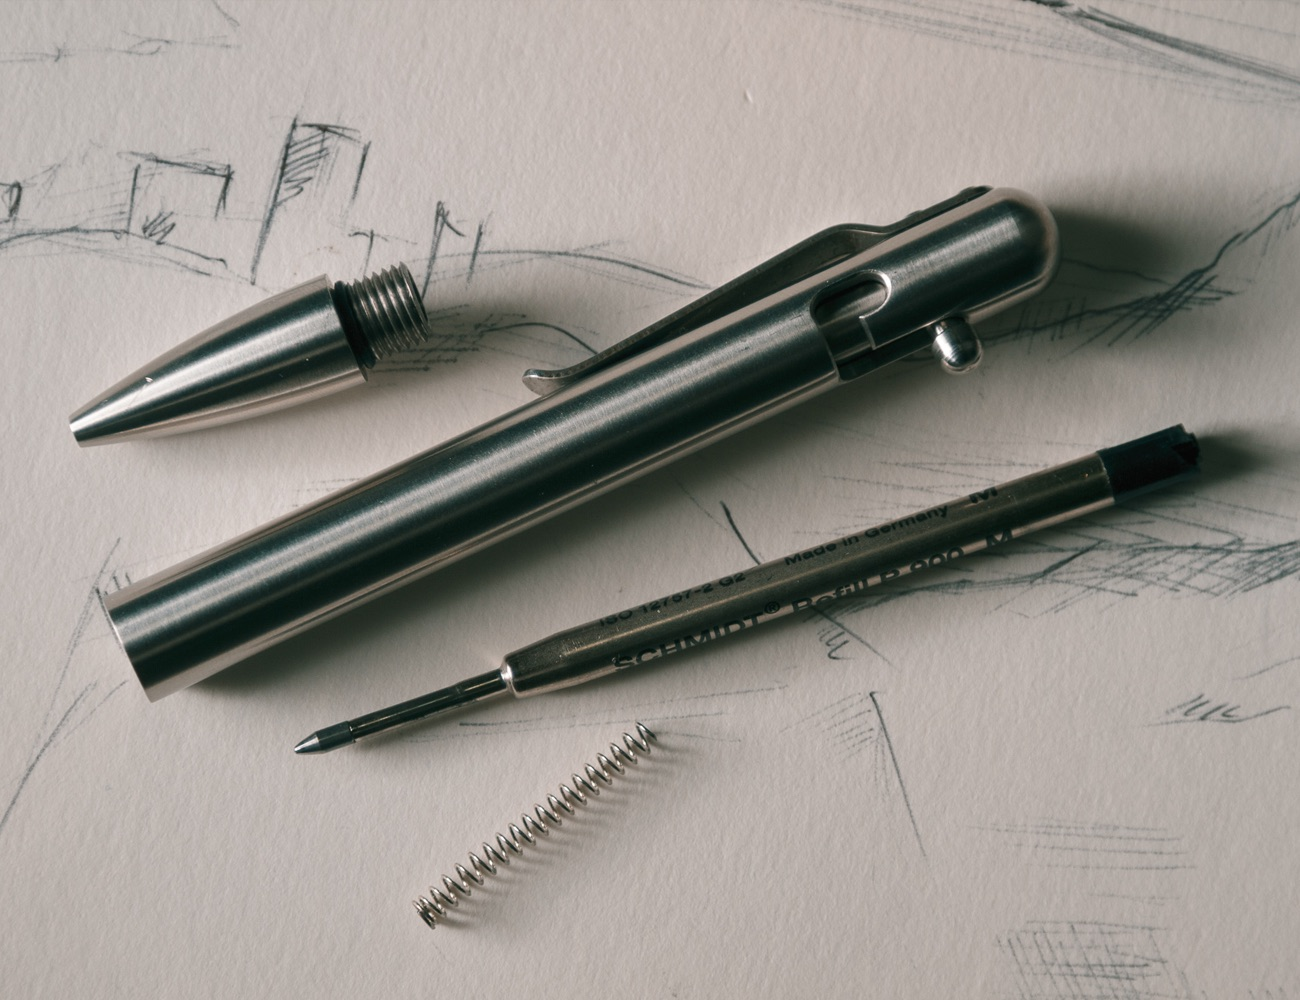 Bolt Action Pen Stainless Steel Or Carbon Fiber Precision Machined Choose Type Empire Tactical Usa